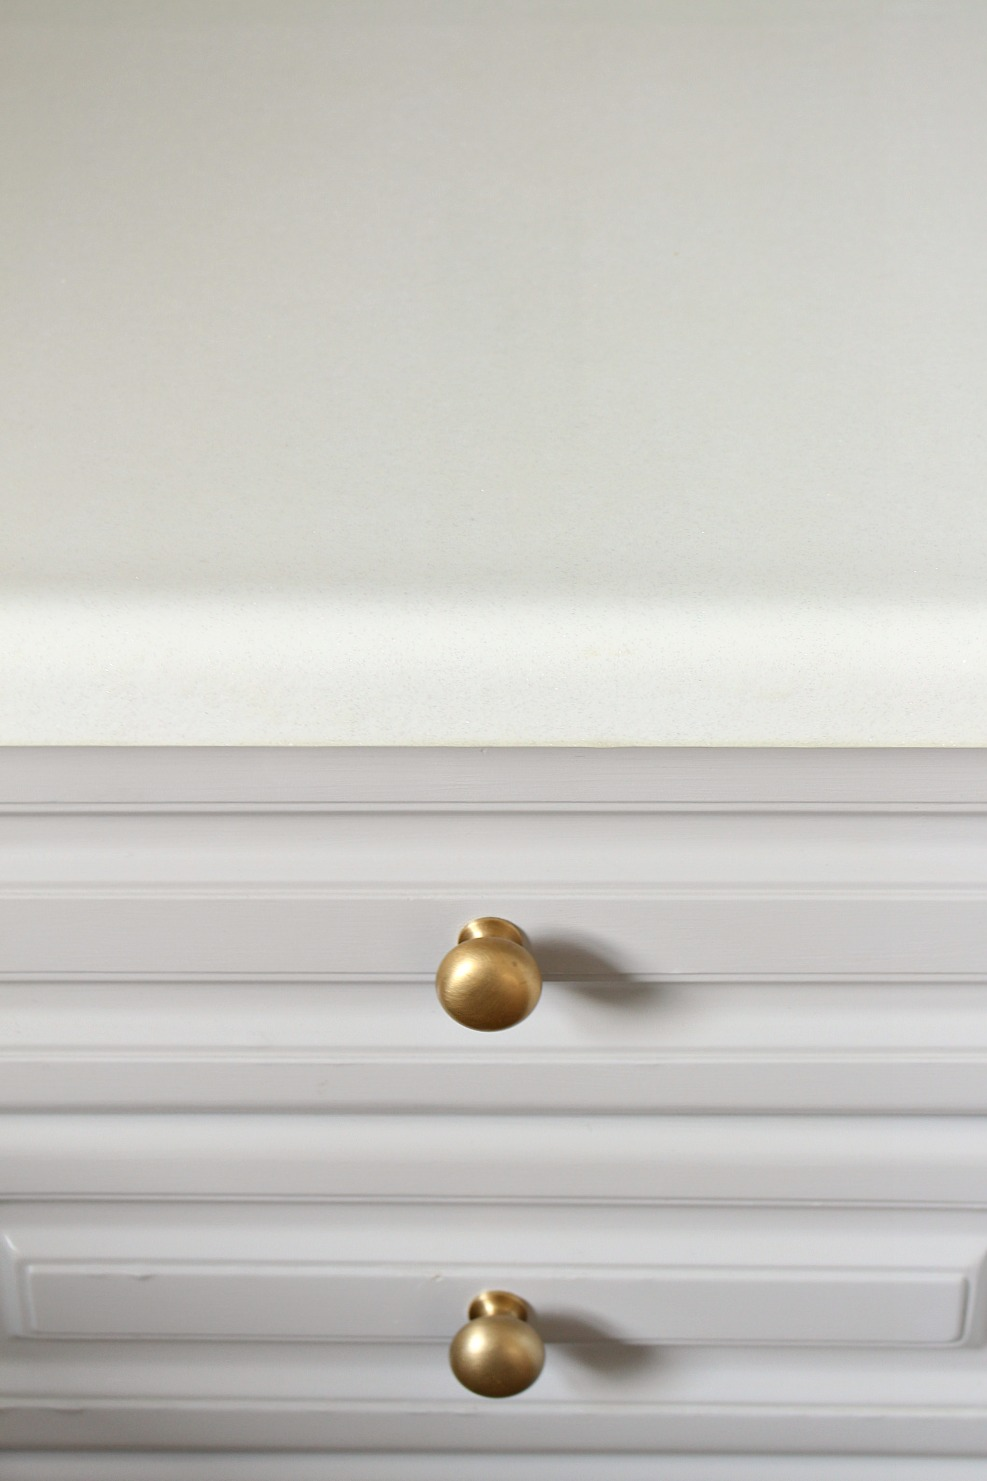 rust-oleum counter top transformations white mica